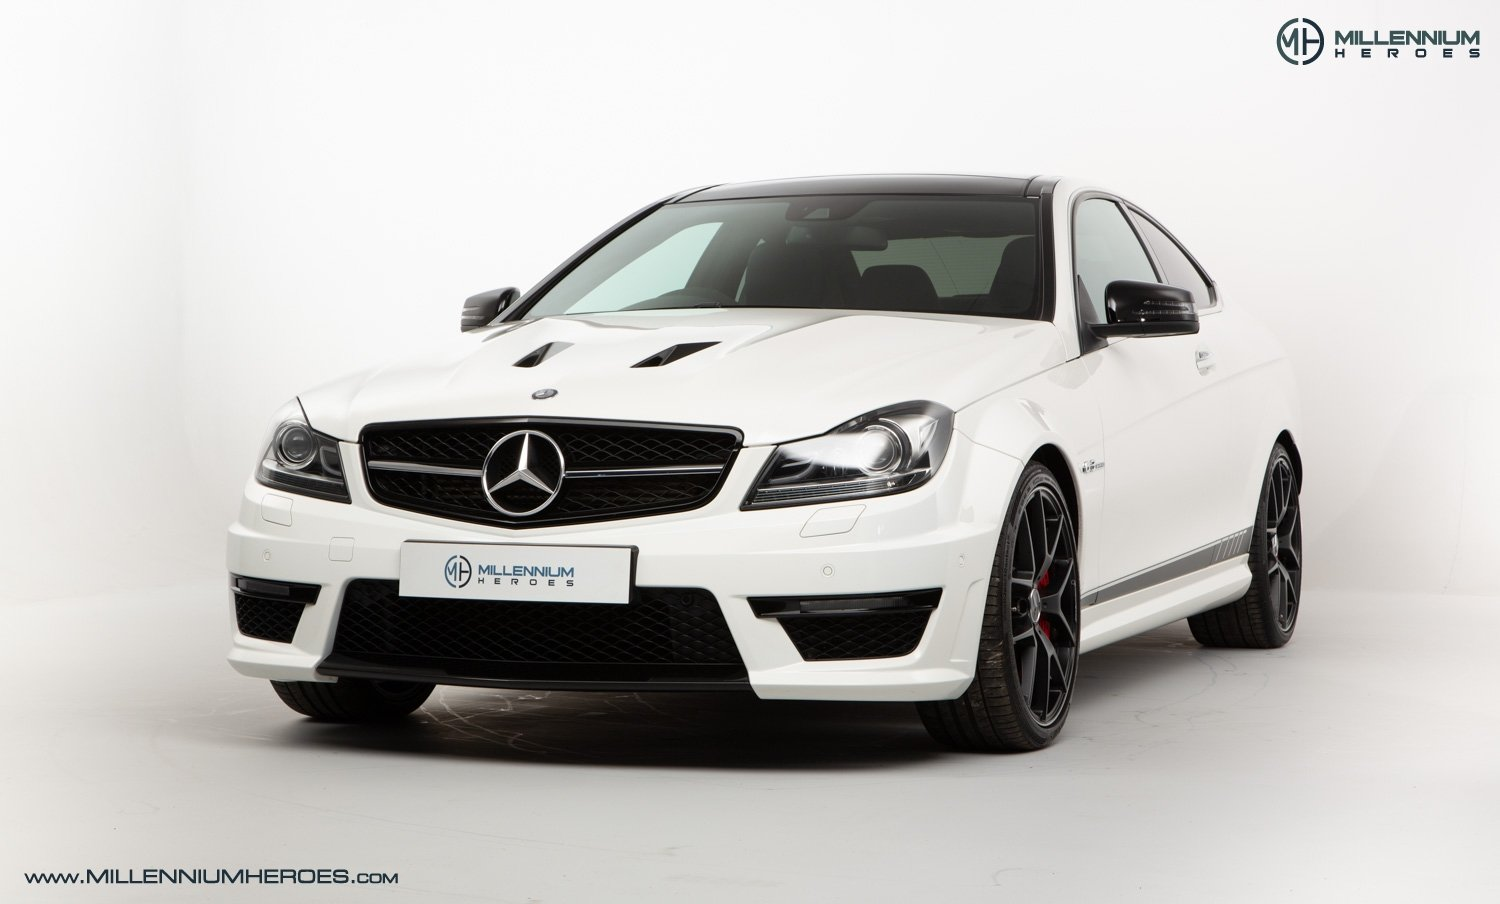 2013 MERCEDES C63 507 COUPE For Sale (picture 1 of 22)